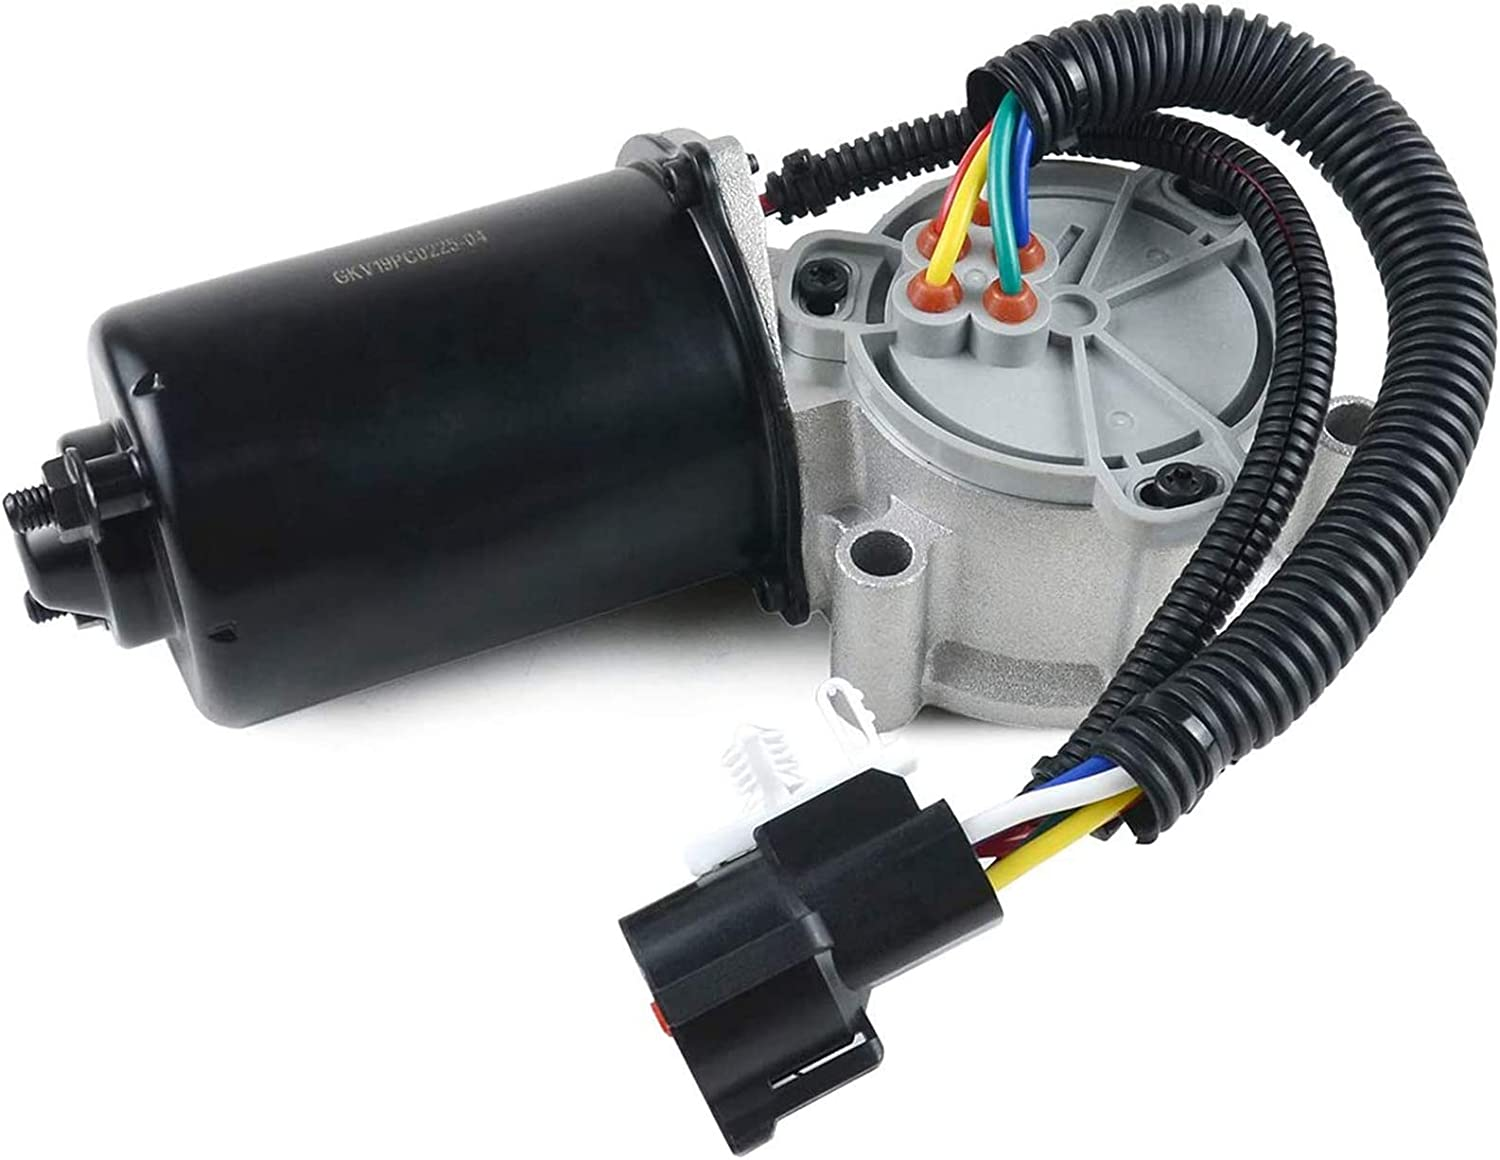 Amazon.com: 600-807 4WD Transfer Case Shift Motor Actuator For 2003-2005 Ford  Explorer 1995-2003 Ford Ranger Mazda B2300 B3000 B4000 1998-2001 B2500:  Automotive | Ford Ranger Transfer Case Wiring Diagram |  | Amazon.com